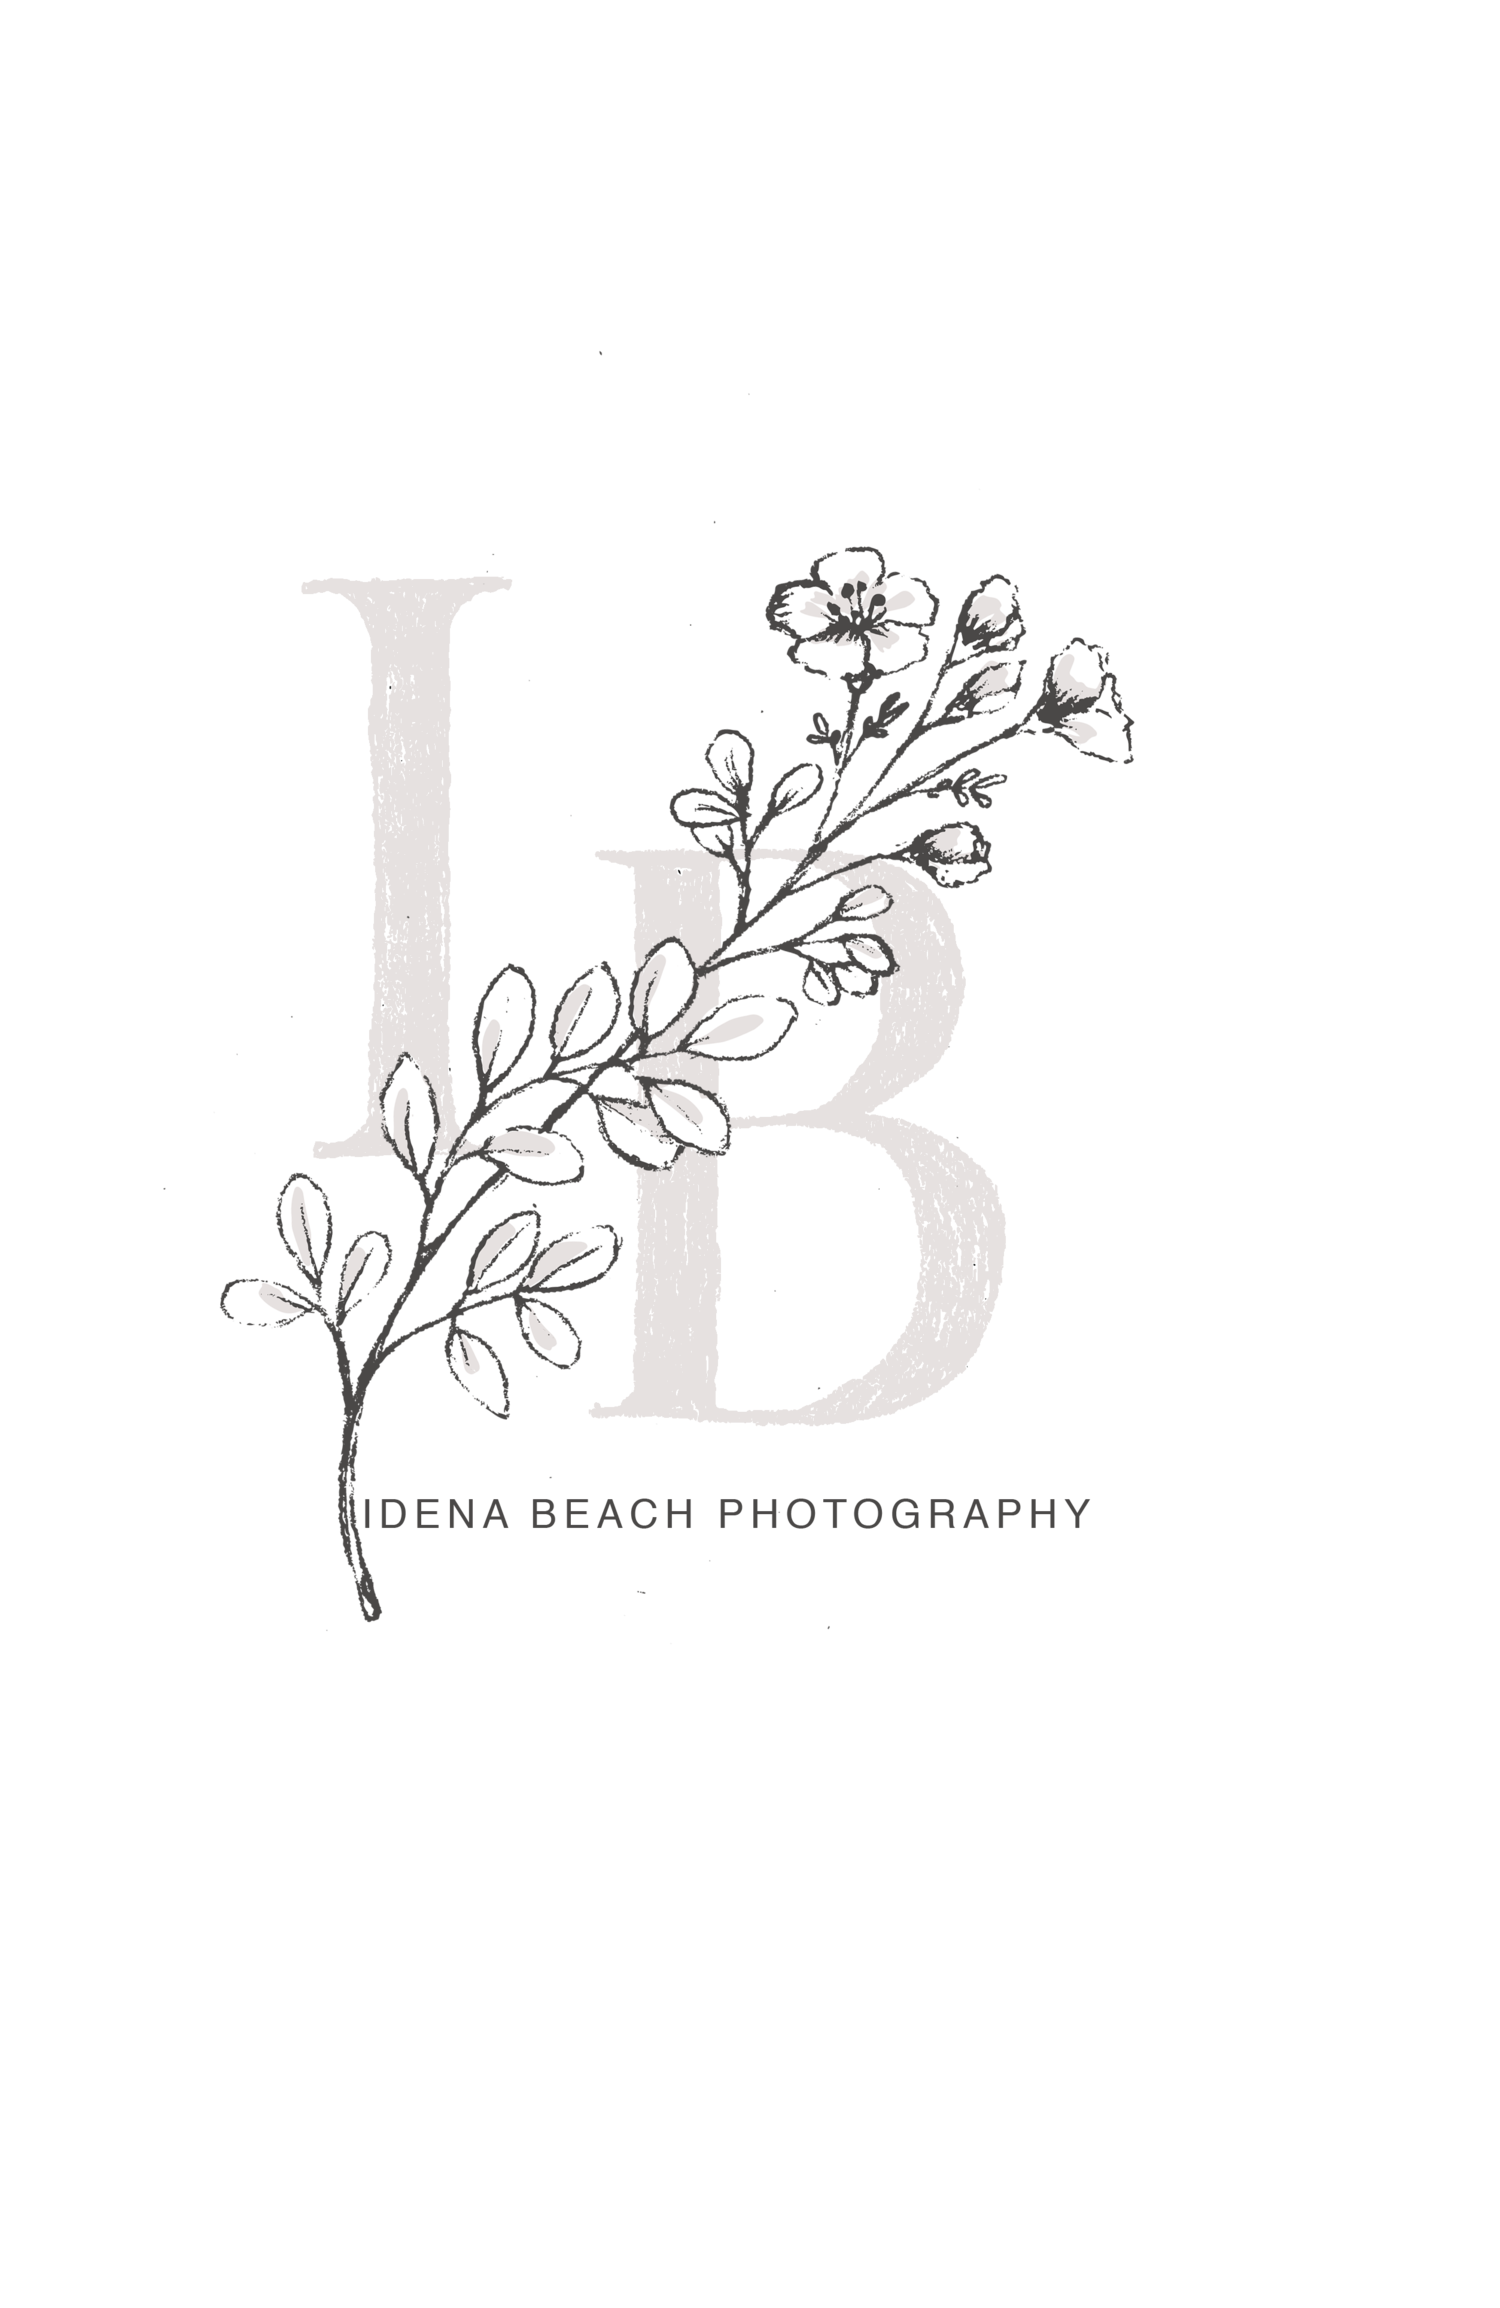 Idena Beach Photography